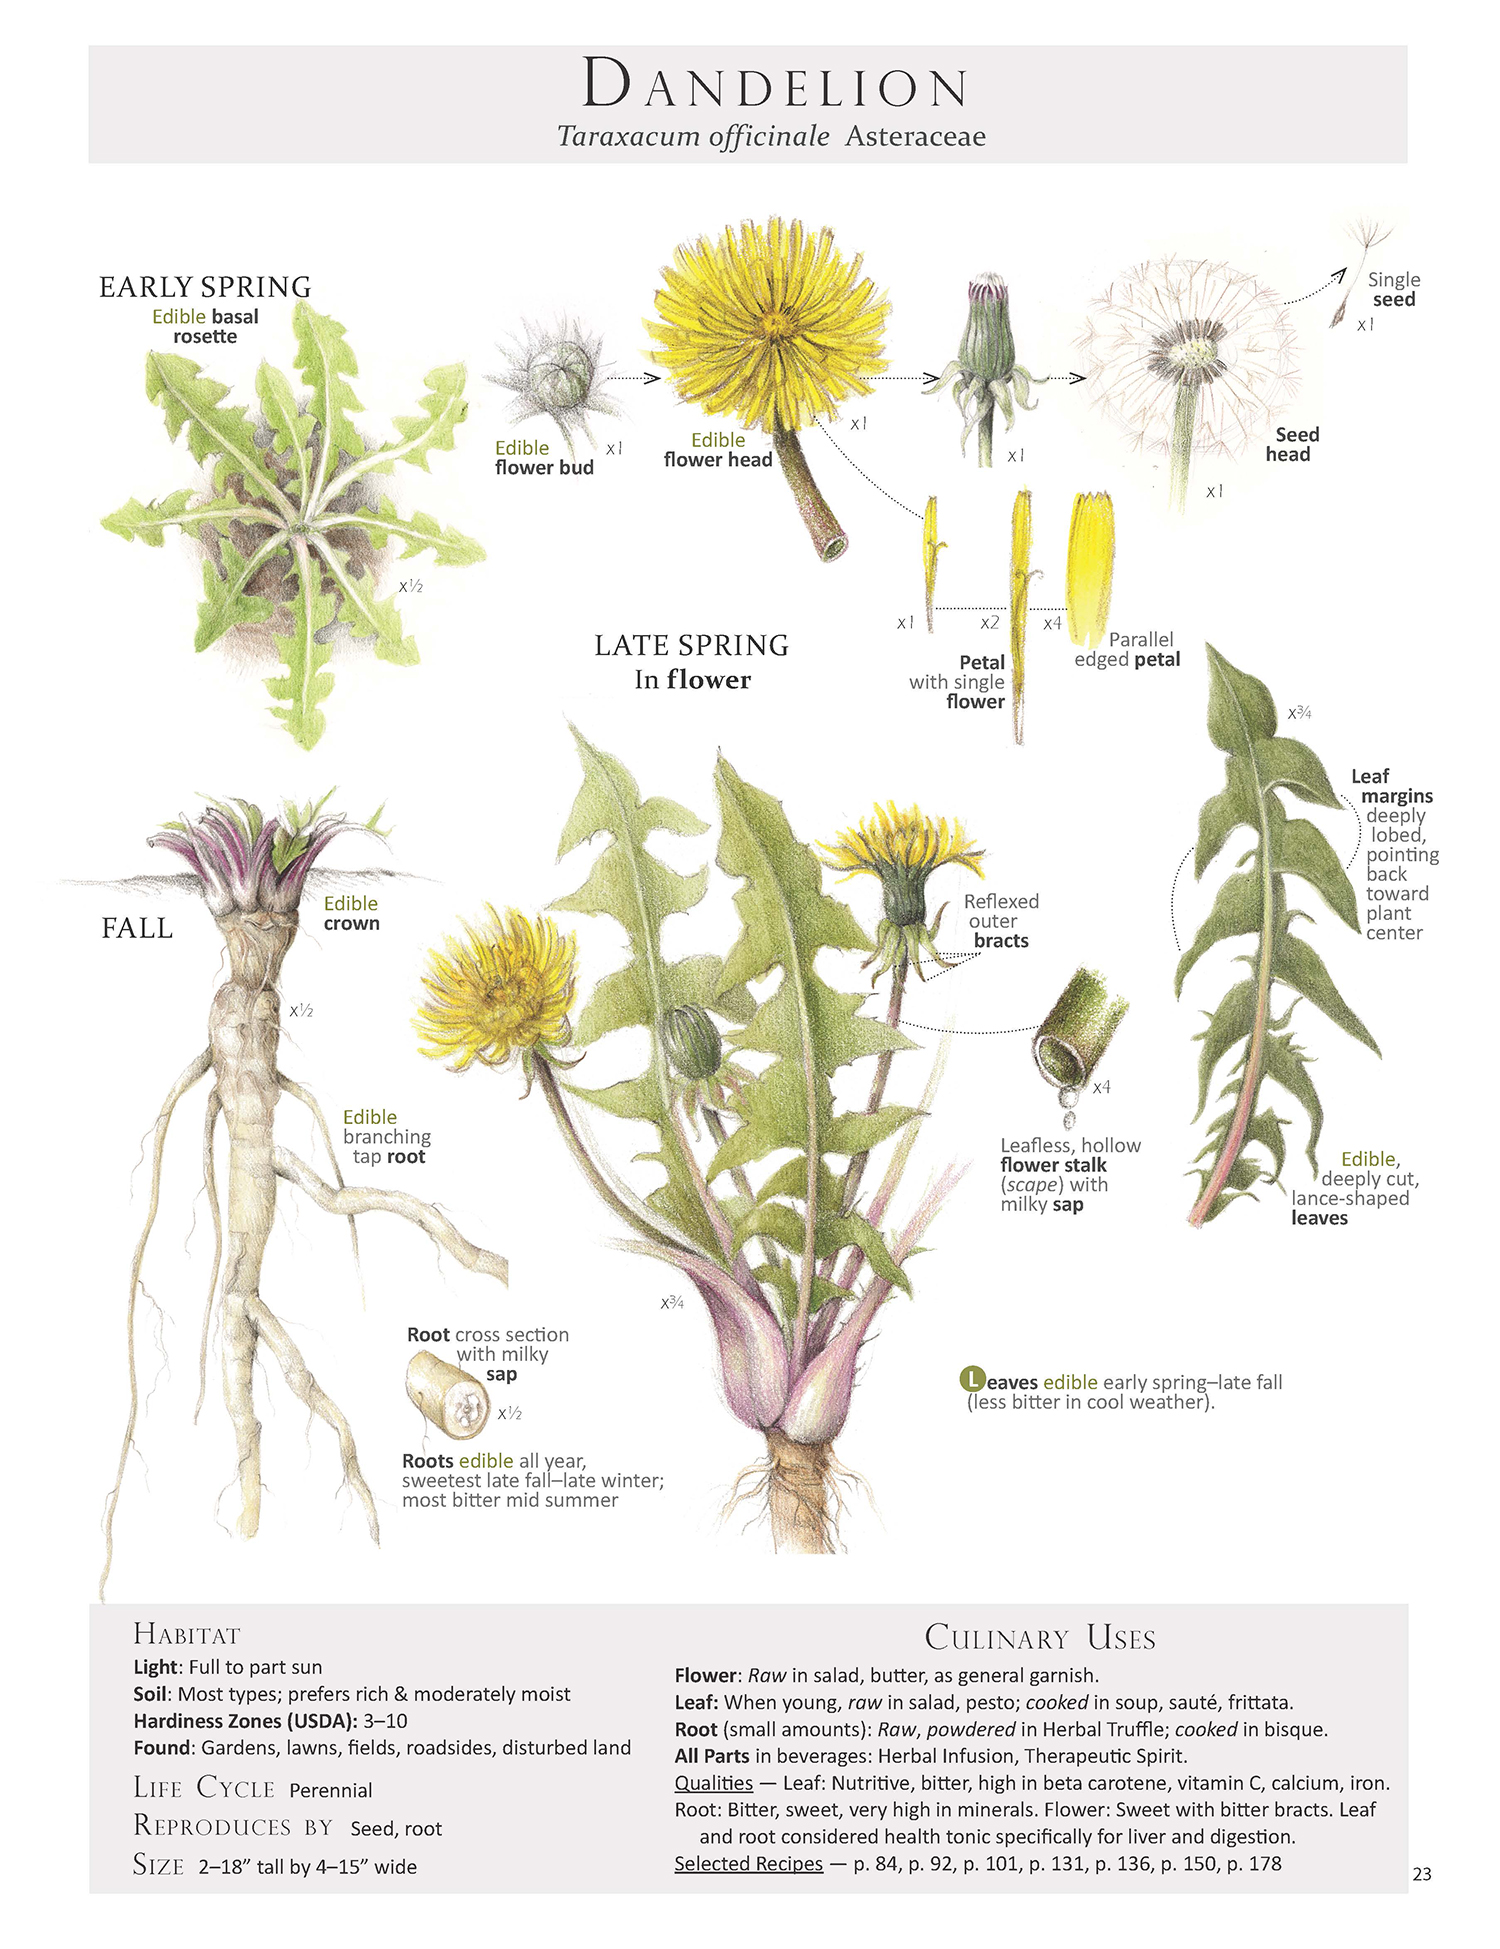 Dandelion plan map from our book Foraging & Feasting: A Field Guide and Wild Food Cookbook by Dina Falconi, illustrated by Wendy Hollender. Book Link:  http://bit.ly/1Auh44Q